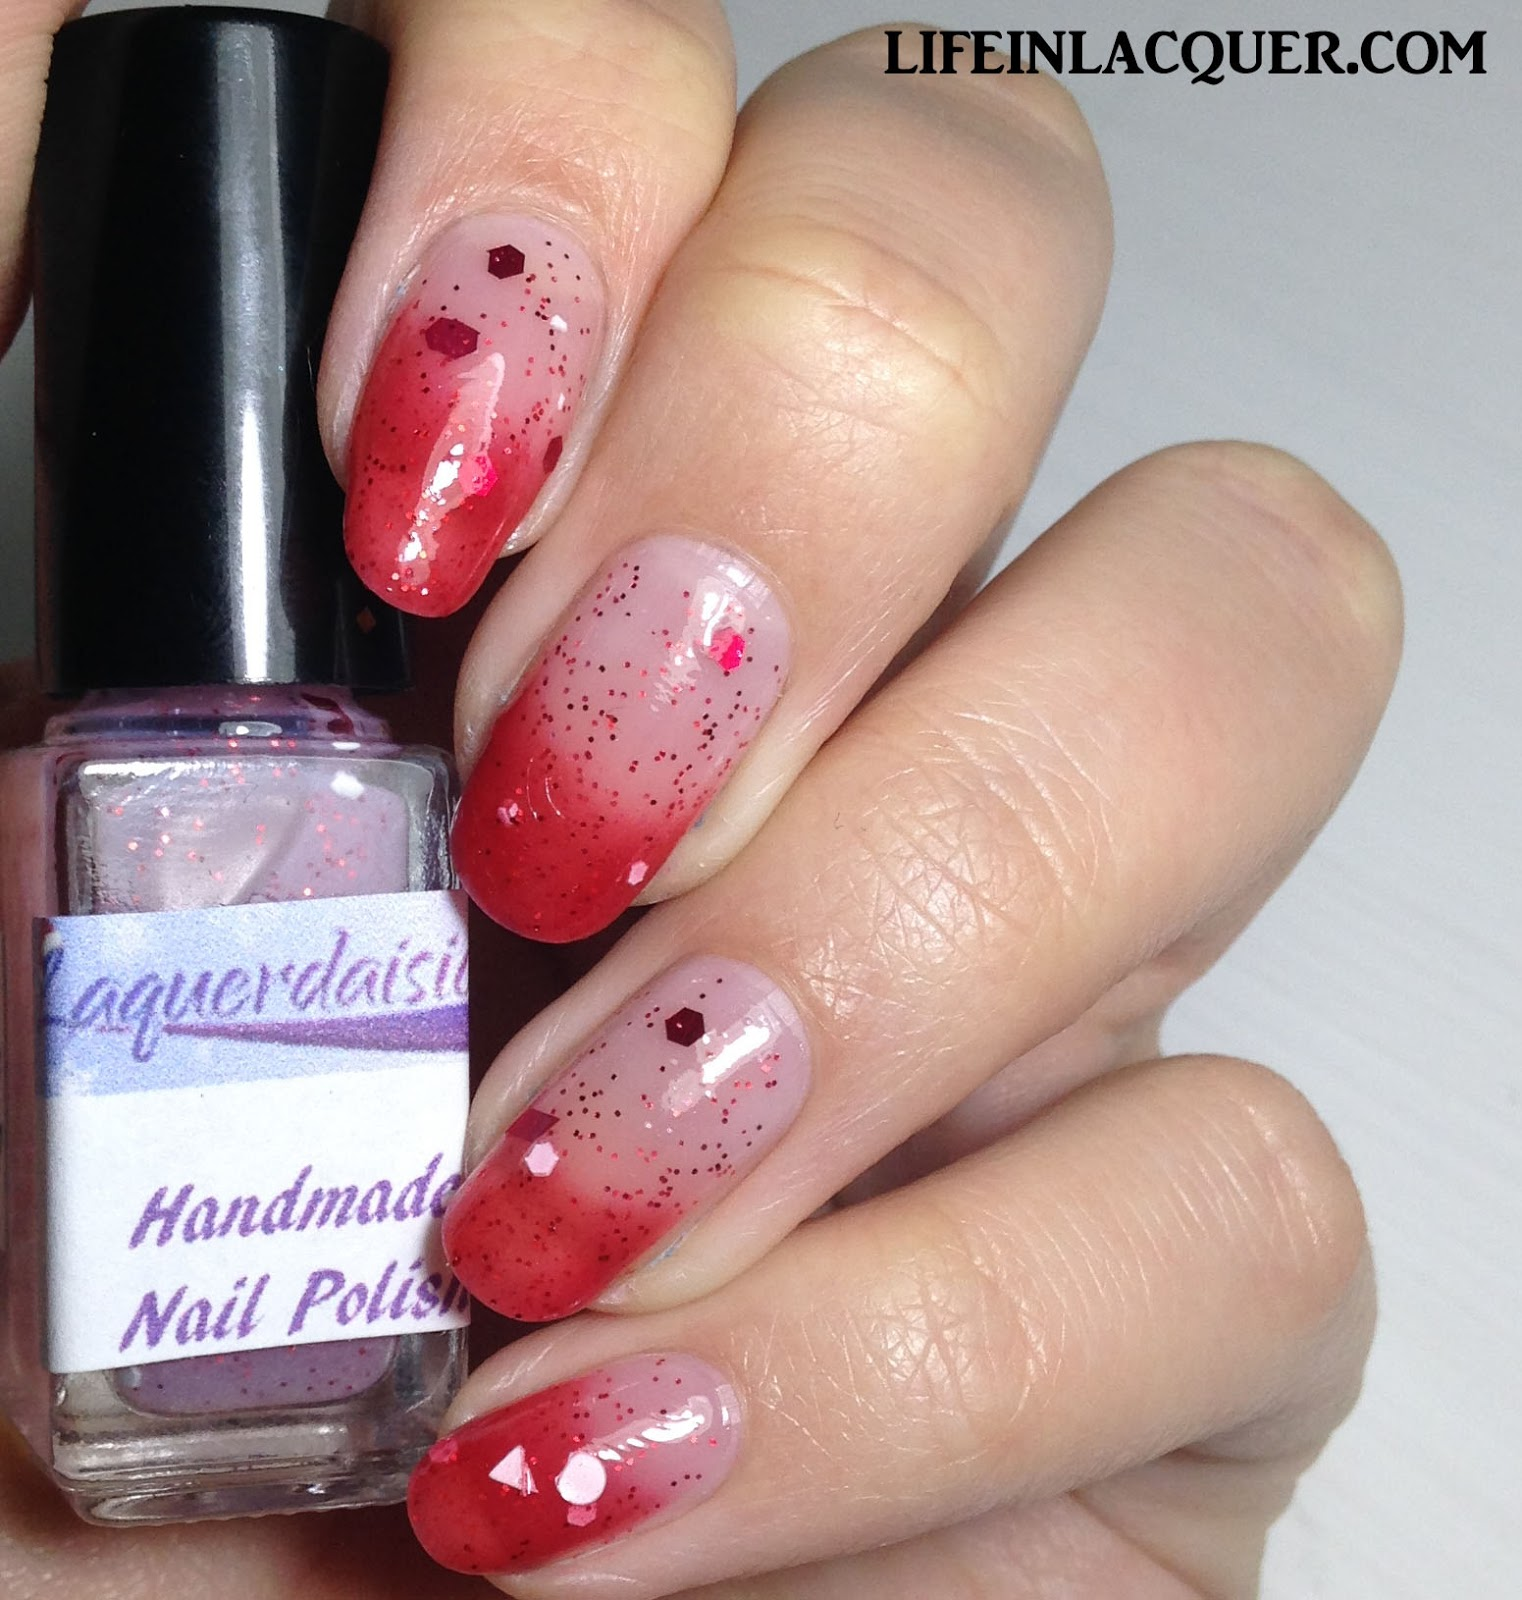 laquerdaisical Candy Caned swatch and review indie polish uk